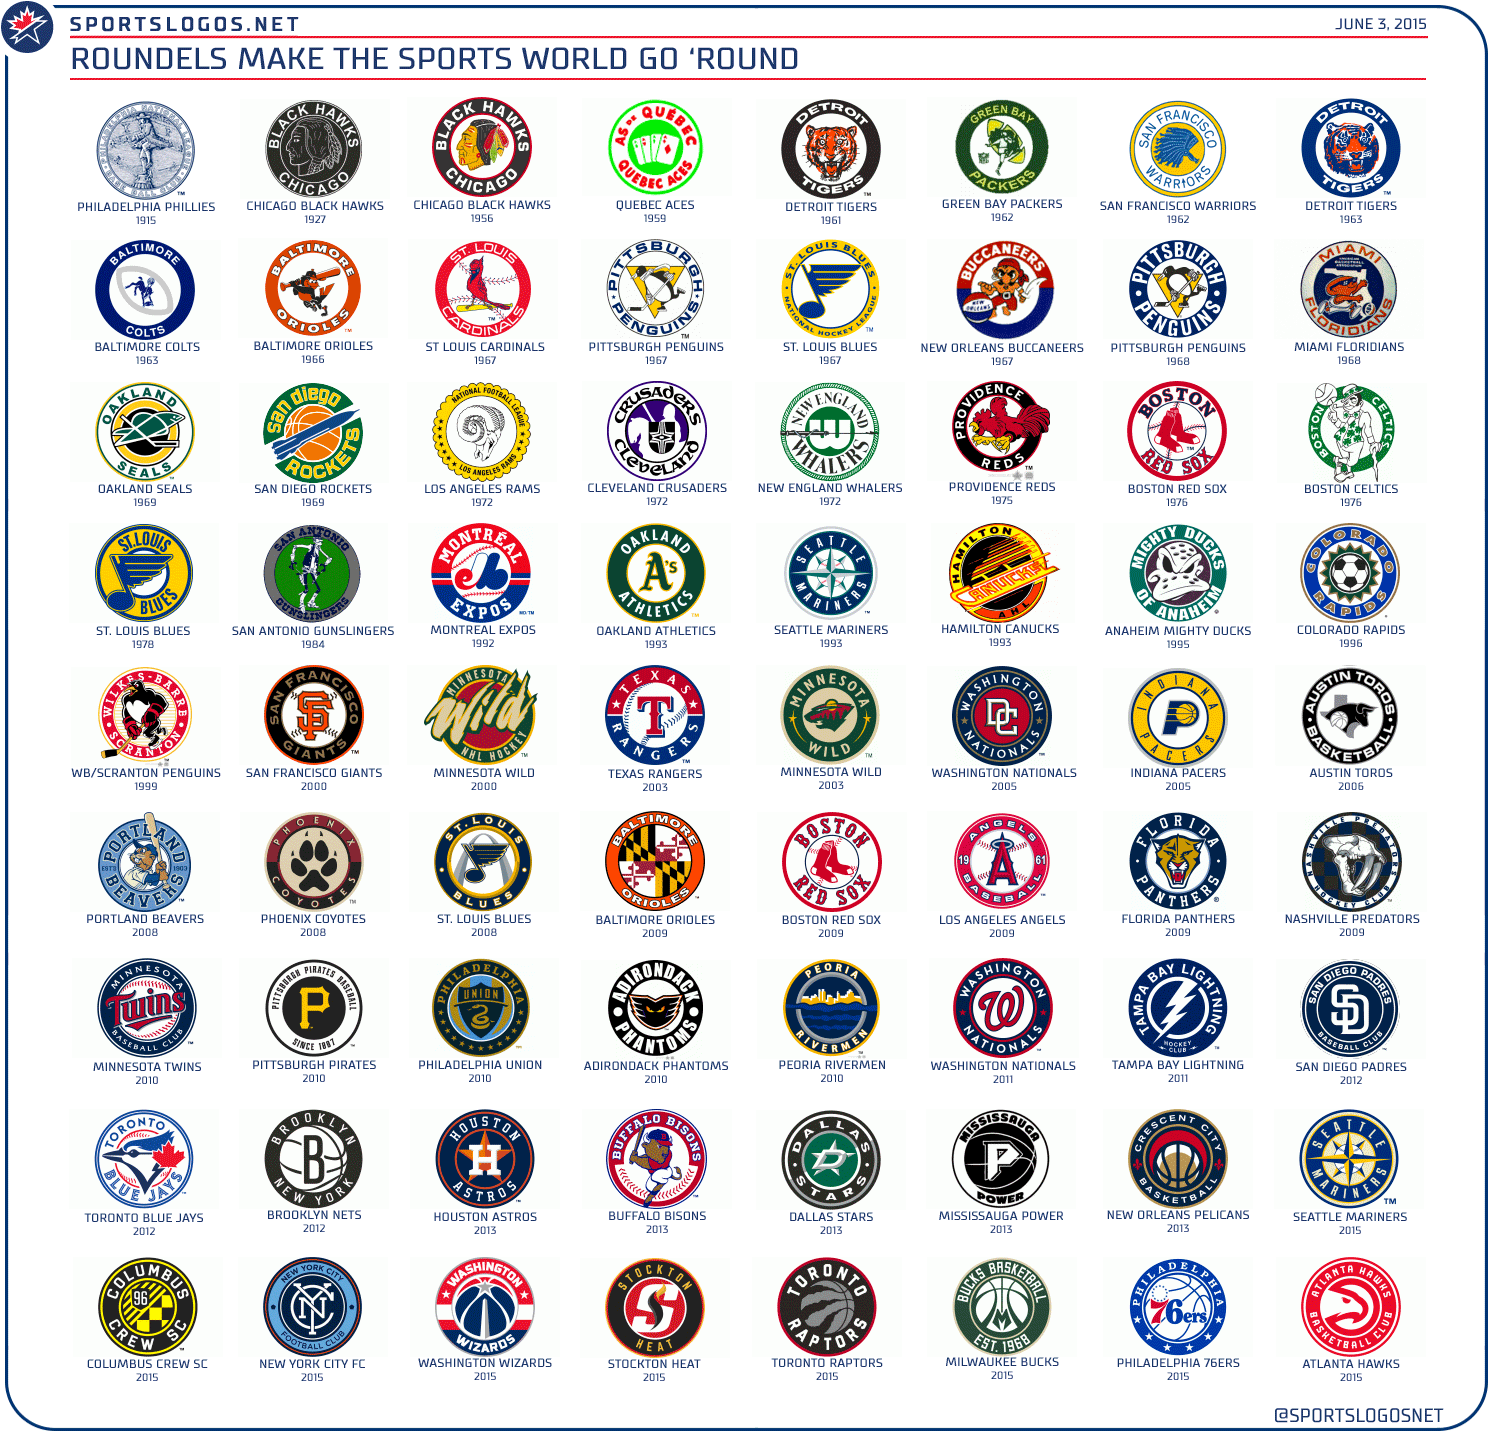 100 Years Of Roundels In Sports Logos Chris Creamer S